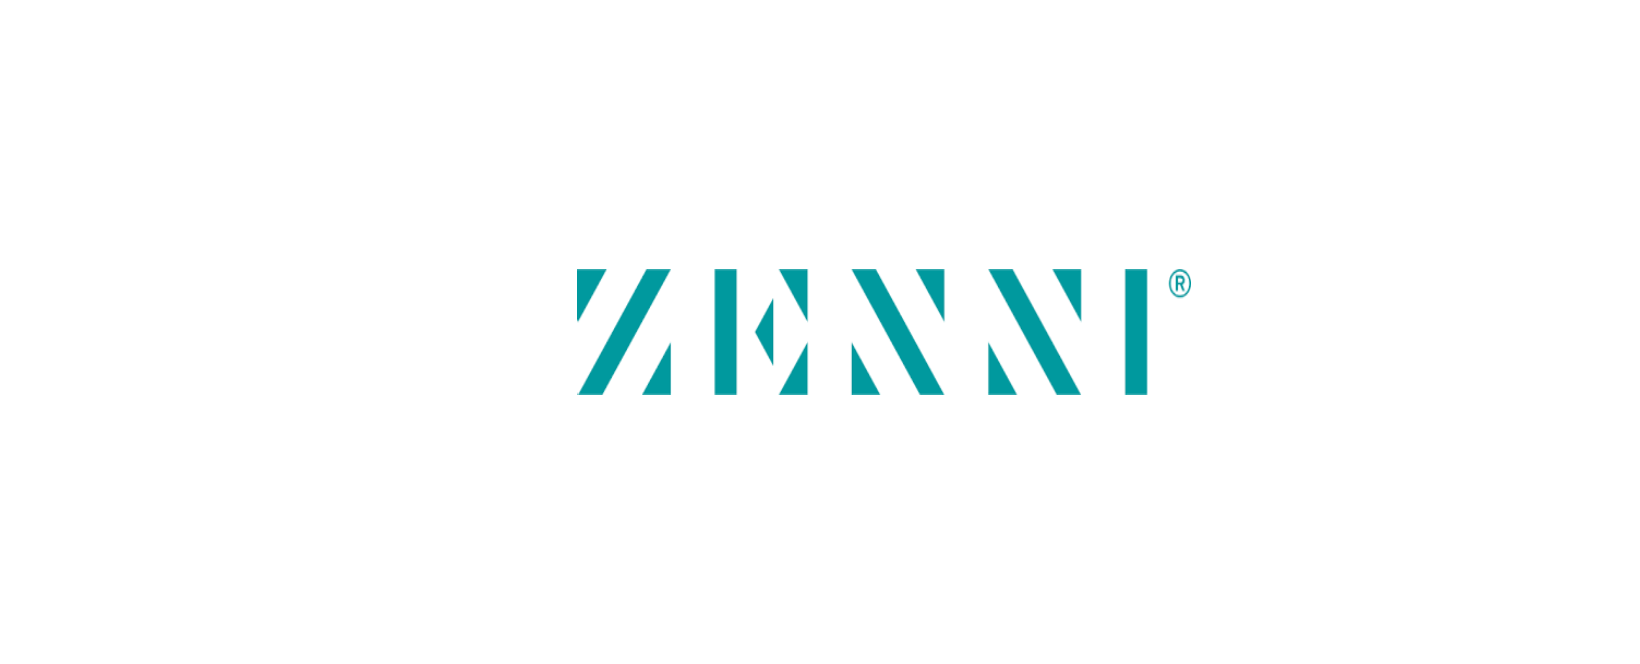 Zenni Optical Review – Colorful Glasses, Colorful World!